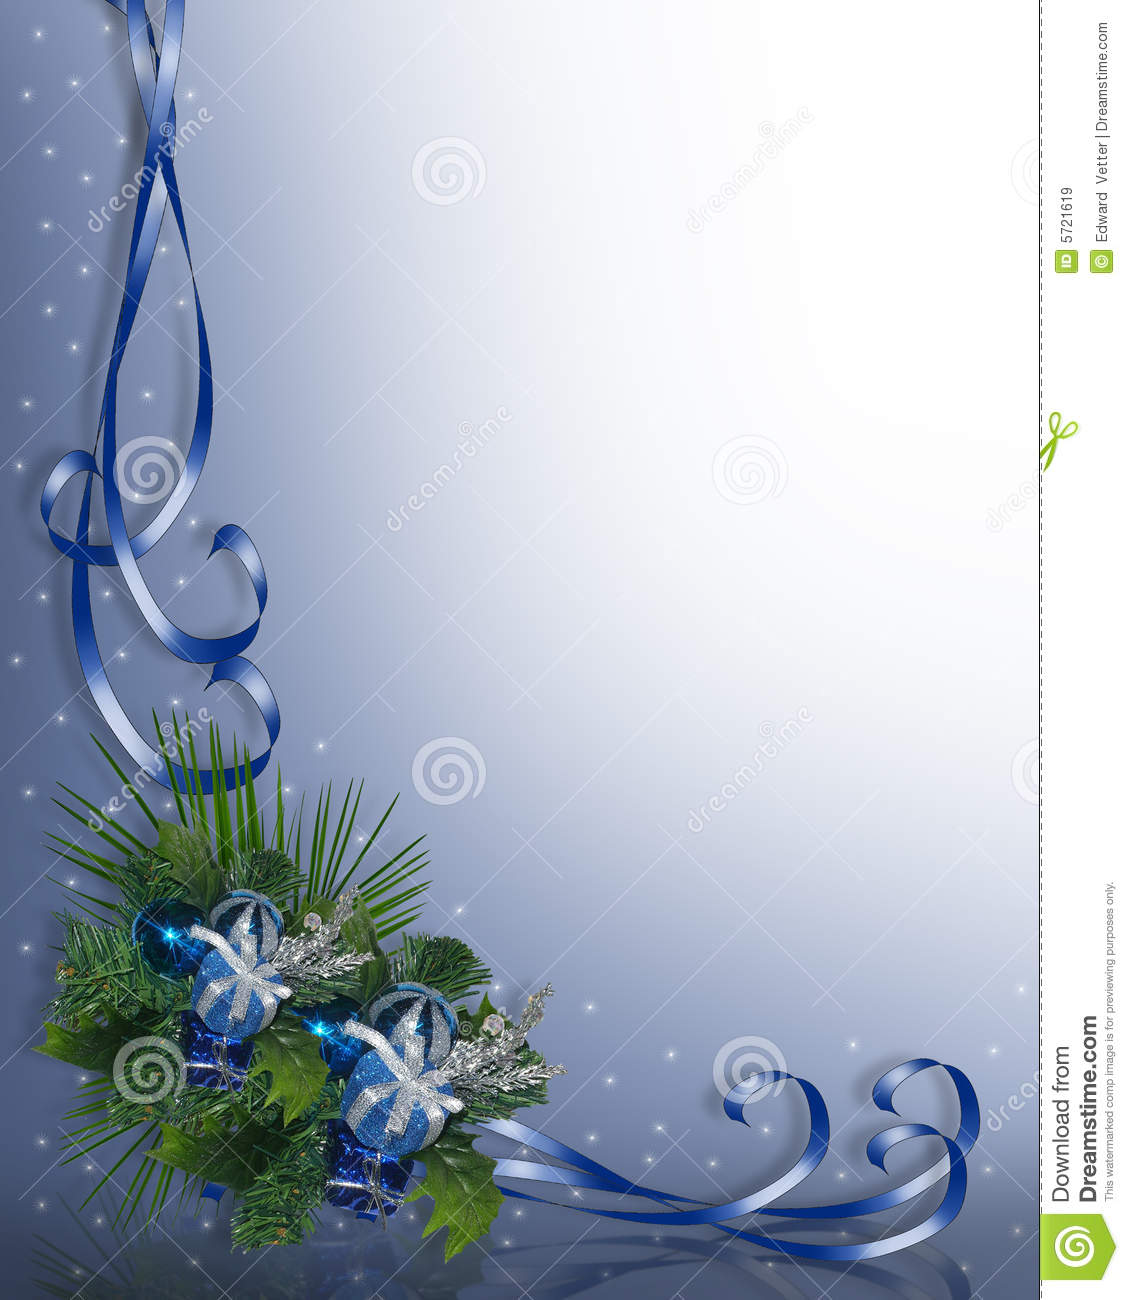 Christmas Border Blue Royalty Free Stock Images - Image: 5721619